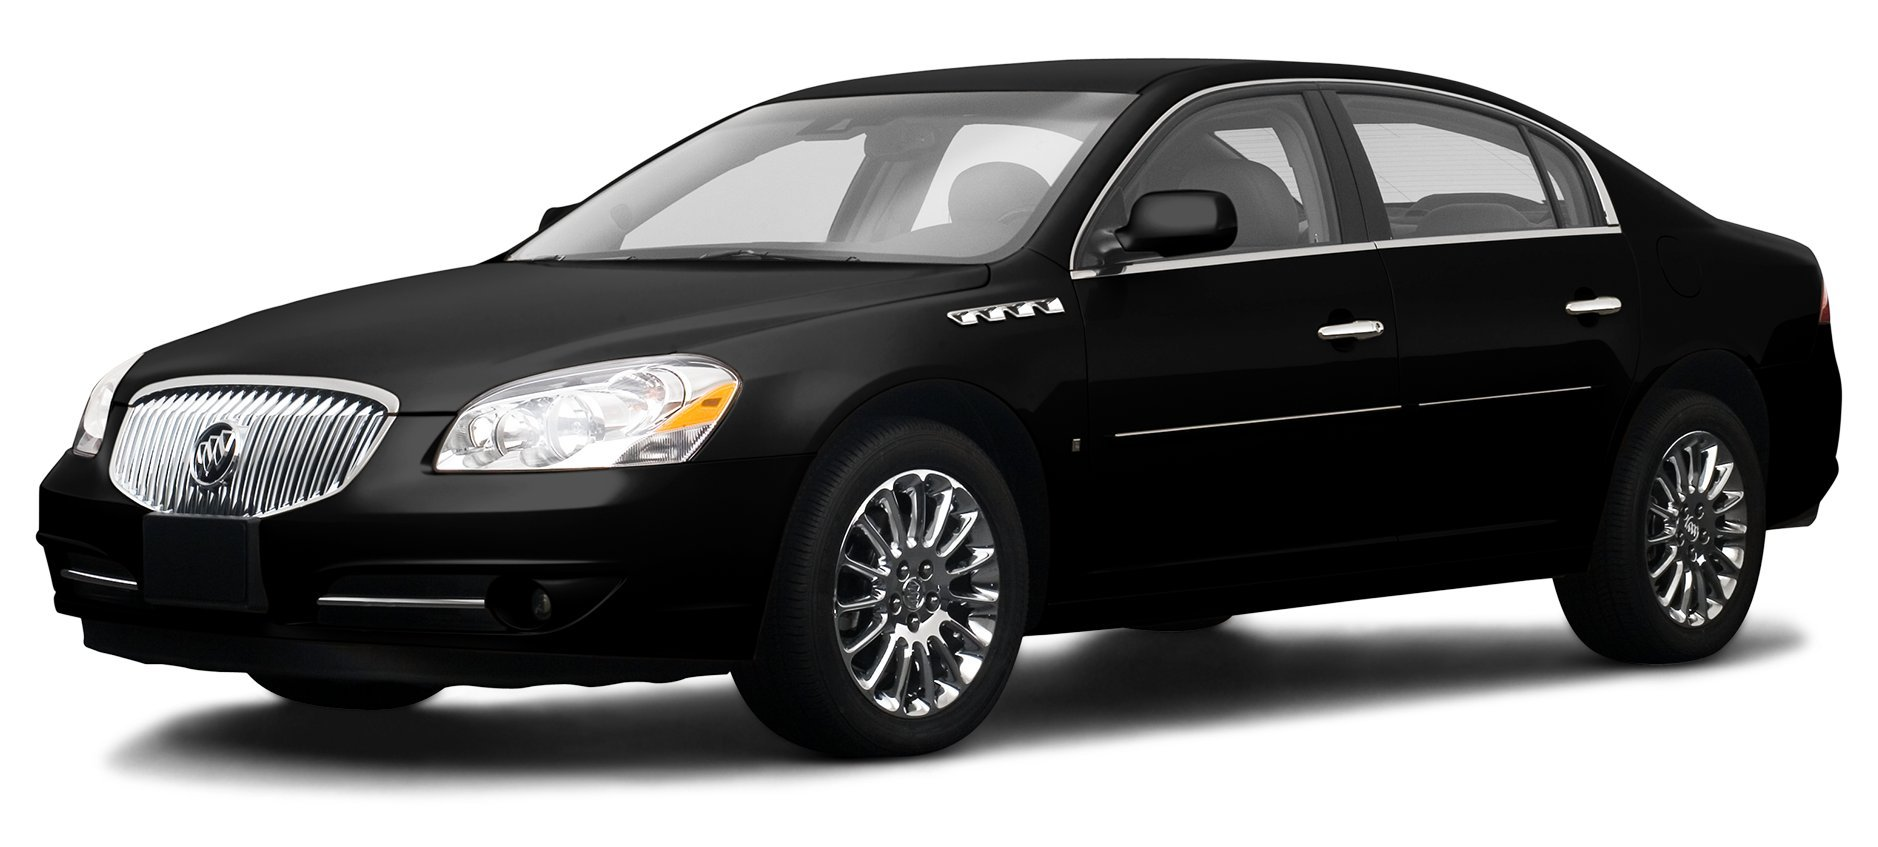 Amazon Com  2009 Buick Lucerne Reviews  Images  And Specs  Vehicles